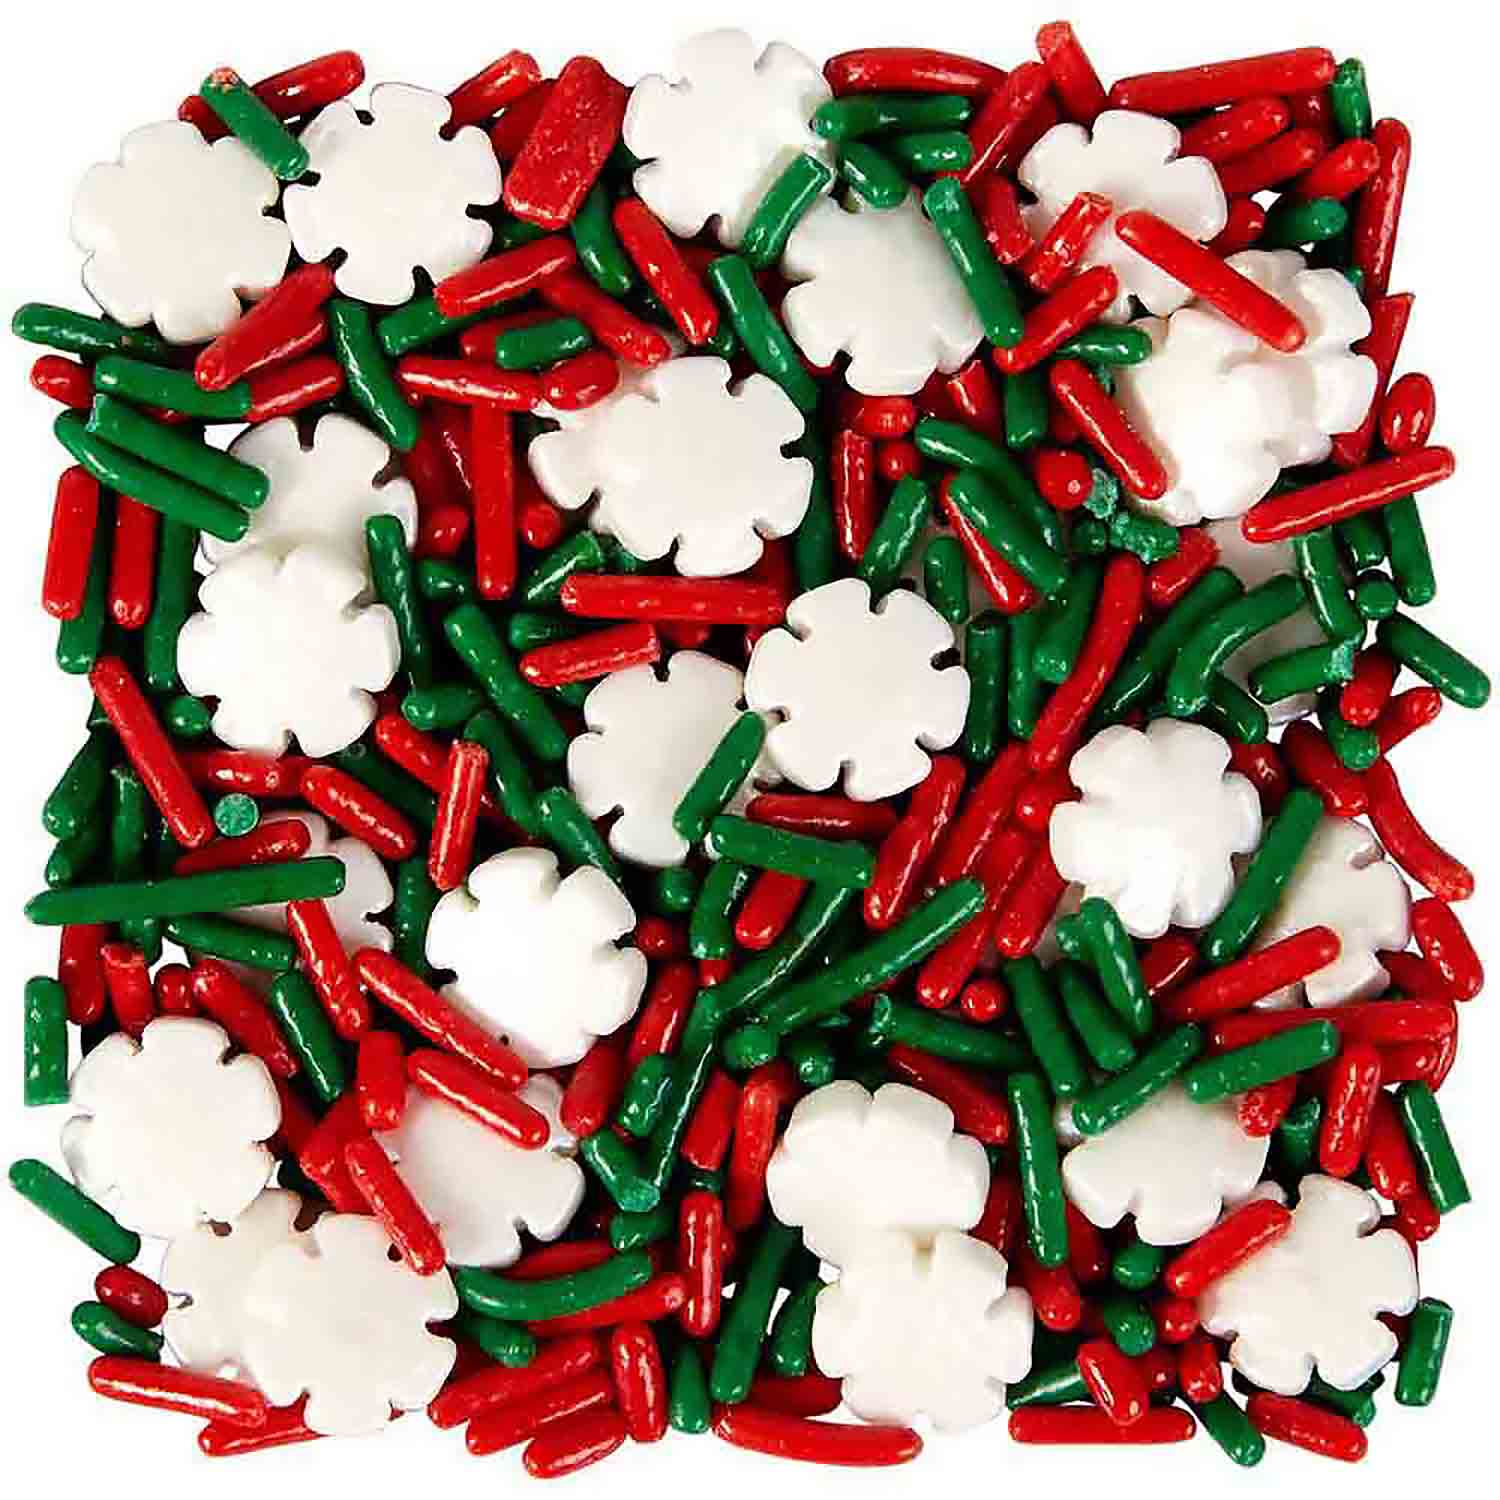 Holiday Snowflake Mix Sprinkles